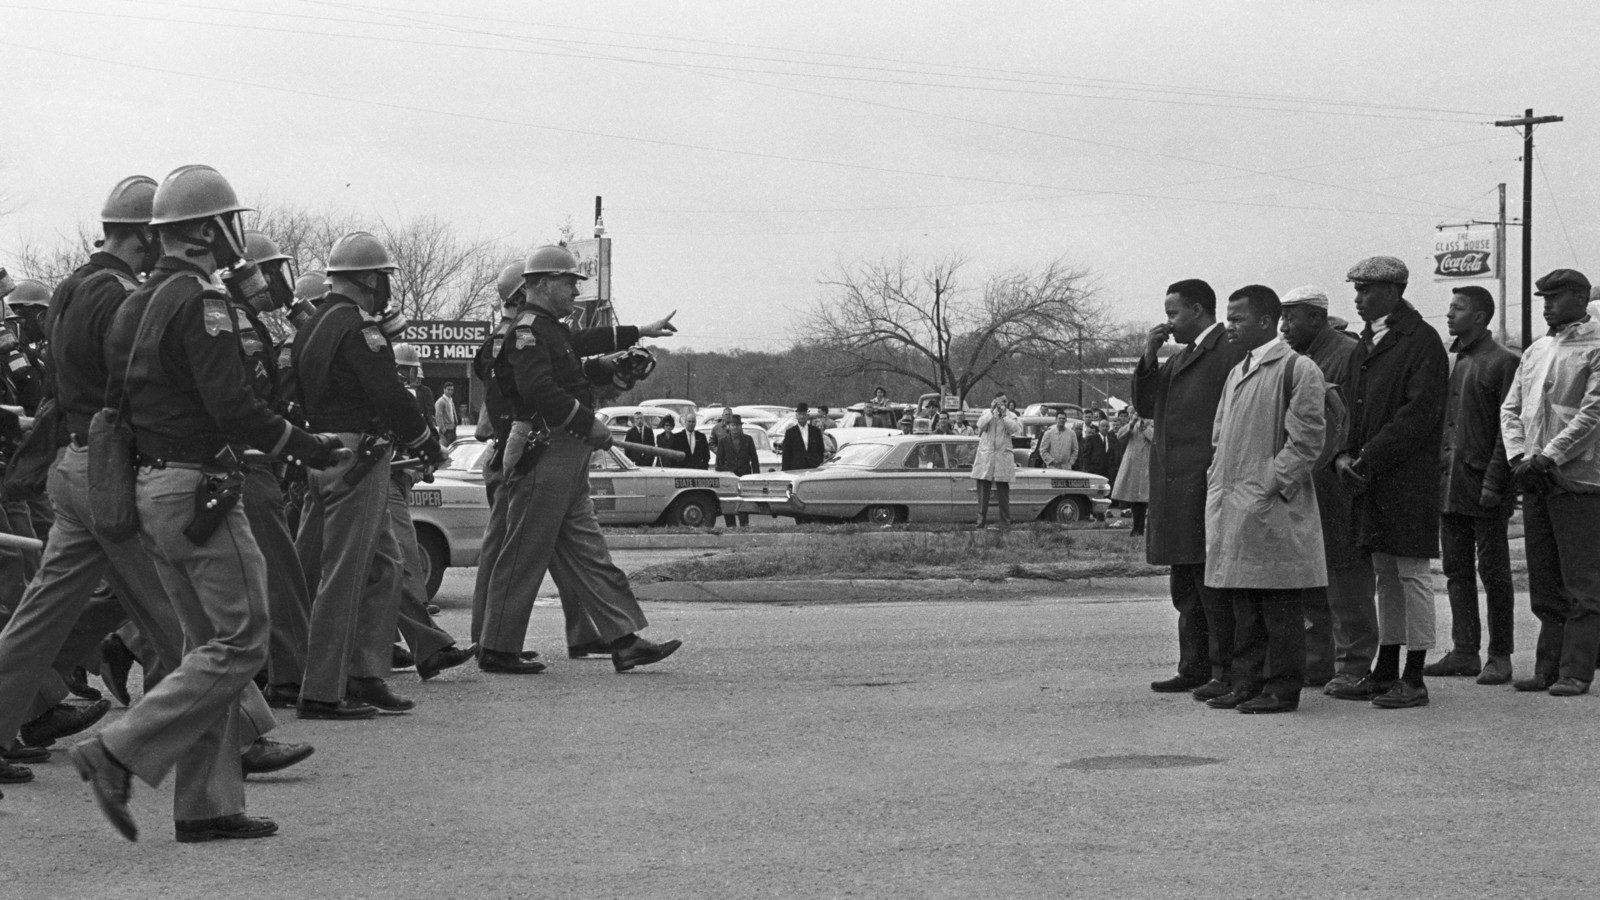 'Two Minute Warning.' Marchers face a line of state troopers in Selma, Alabama moments before police beat the protestors on 7 March, 1965. Photo by Spider Martin, courtesy of Magnolia Pictures.